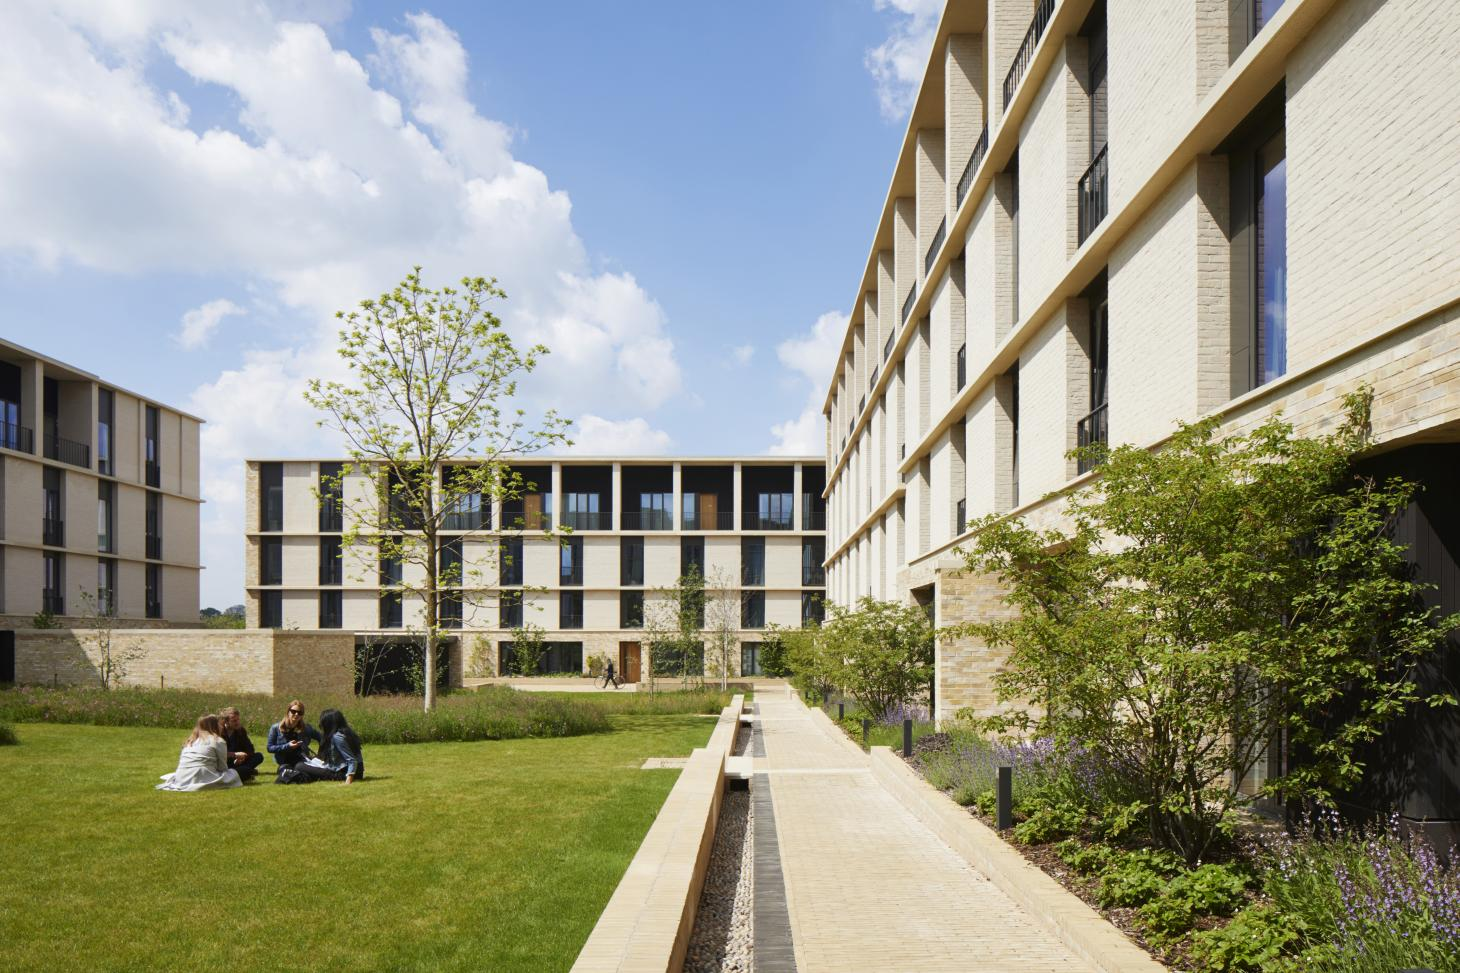 Key Worker Housing in Eddington, Cambridge has been nominated for a Stirling prize